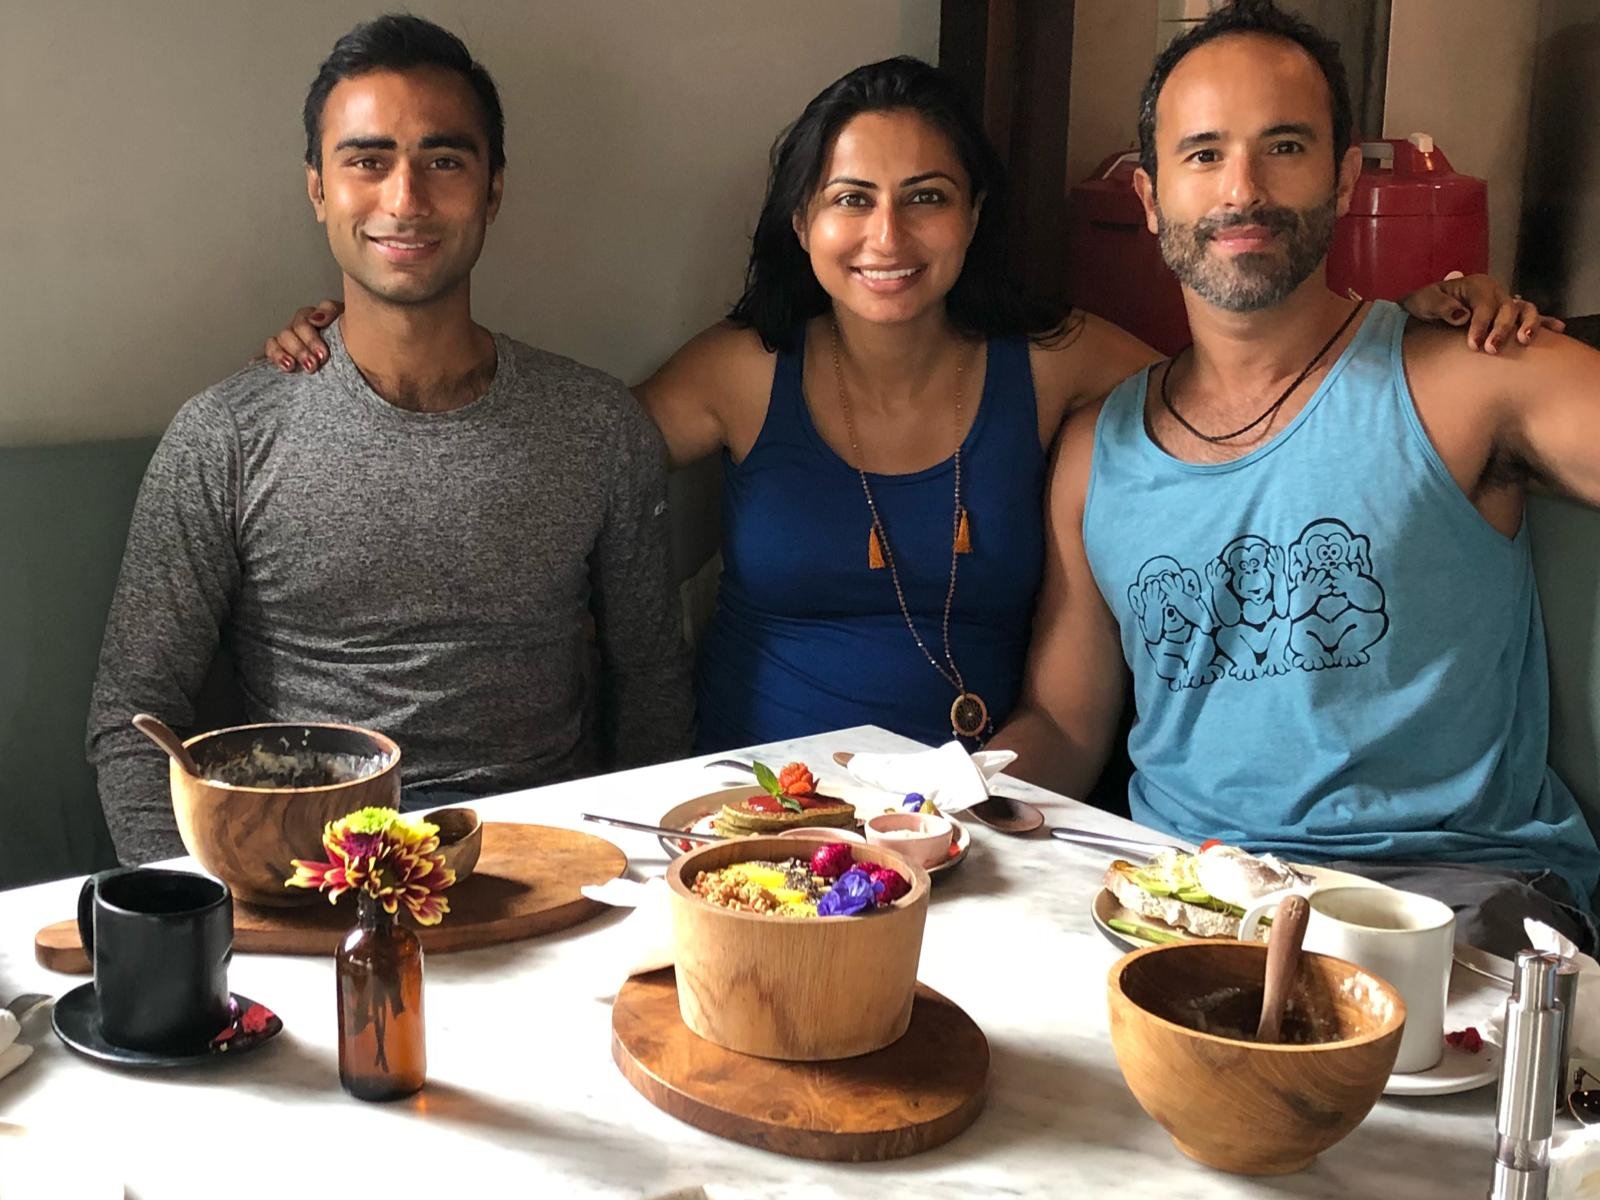 From L to R: My brother and resident yoga instructor extraordinaire, Amit, my blessed and pregnant self, and my amazing husband and travel buddy Mahdad.